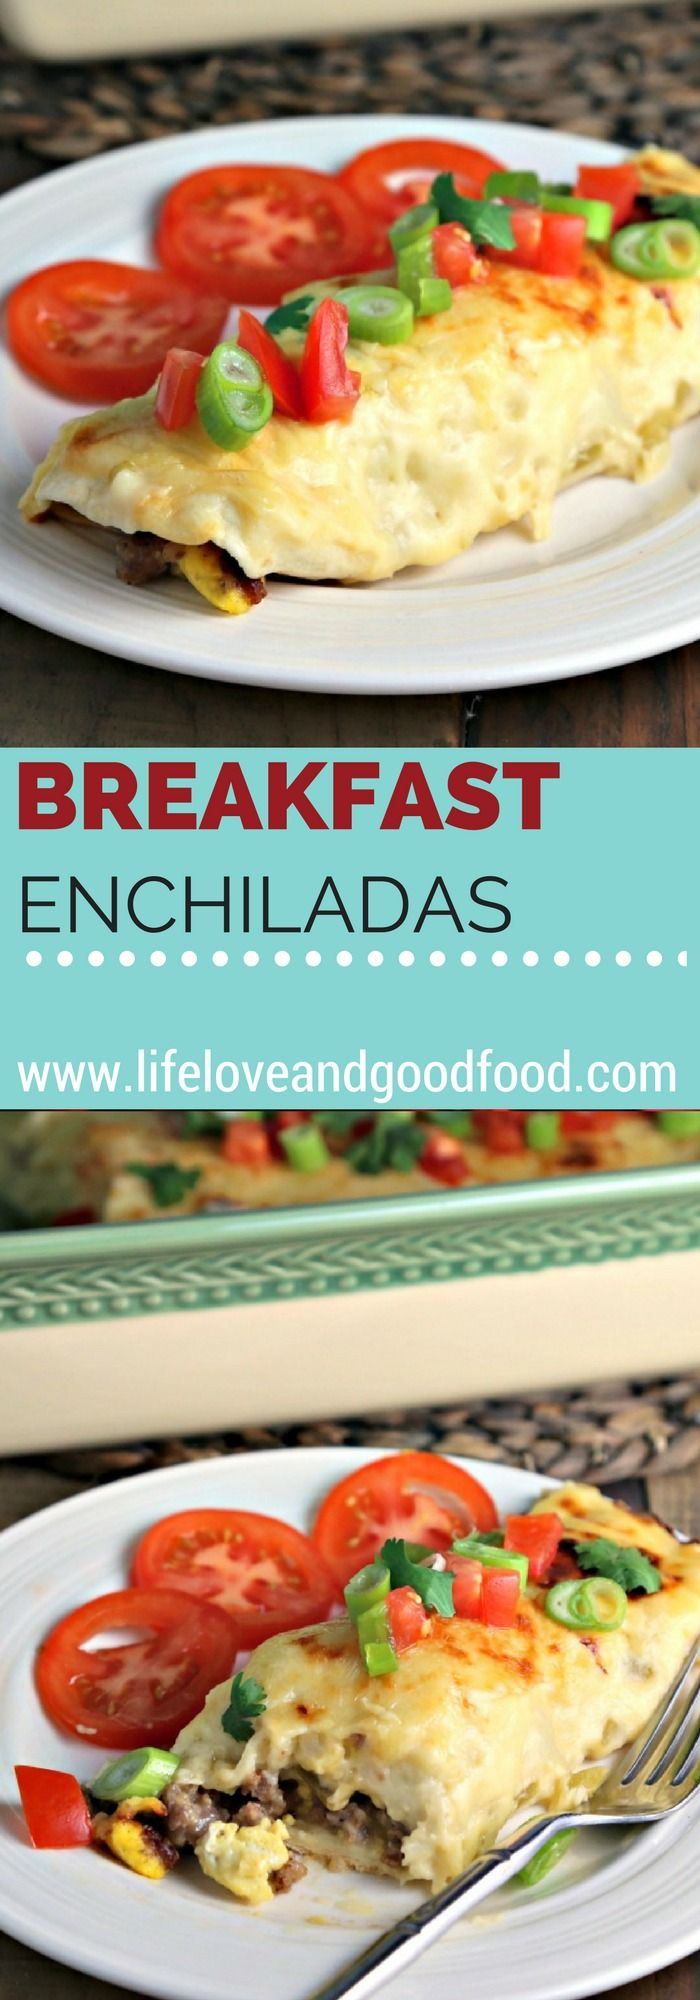 Breakfast Enchiladas | Life, Love, and Good Food #casserole #recipe